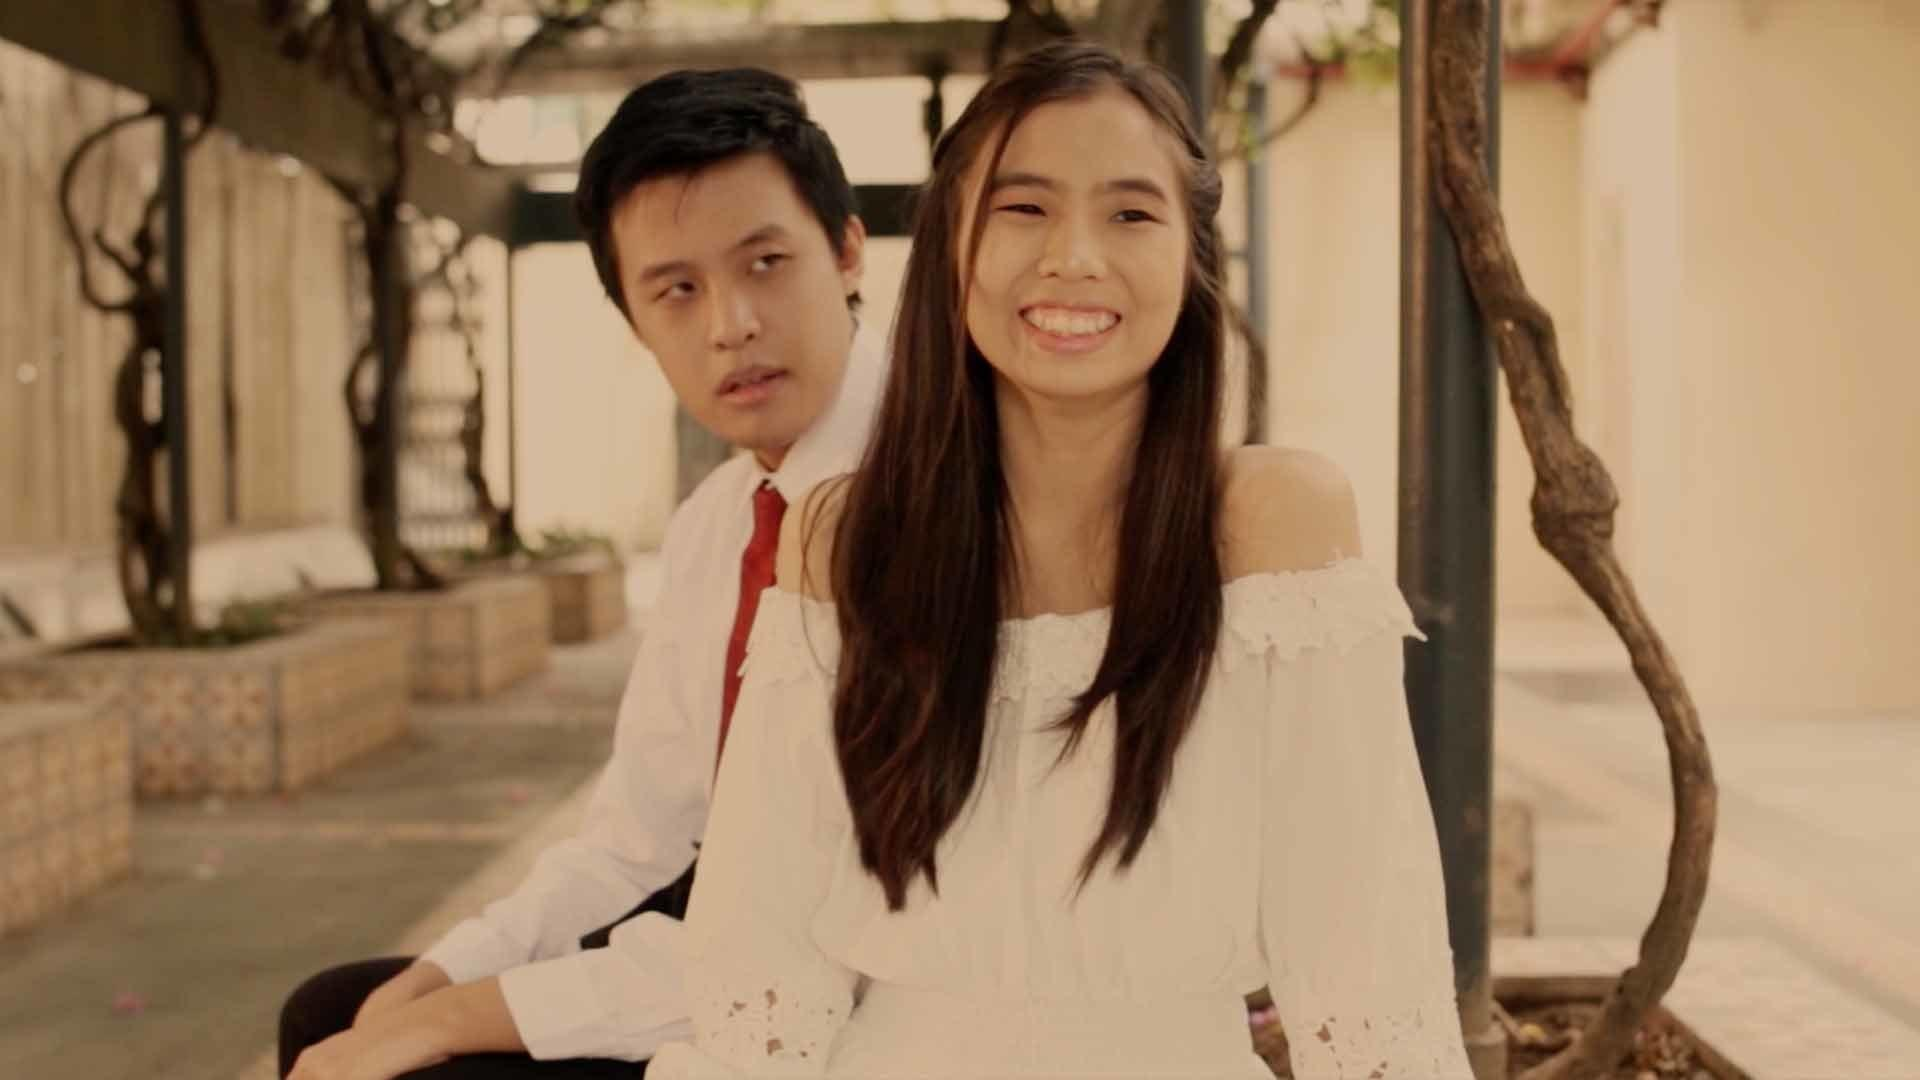 philippine drama american period Watch drama tv series online with help from sidereel find links to shows, read episode summaries and reviews, add ratings, and more sidereel has discontinued its ios and android apps as of 6/5/18.